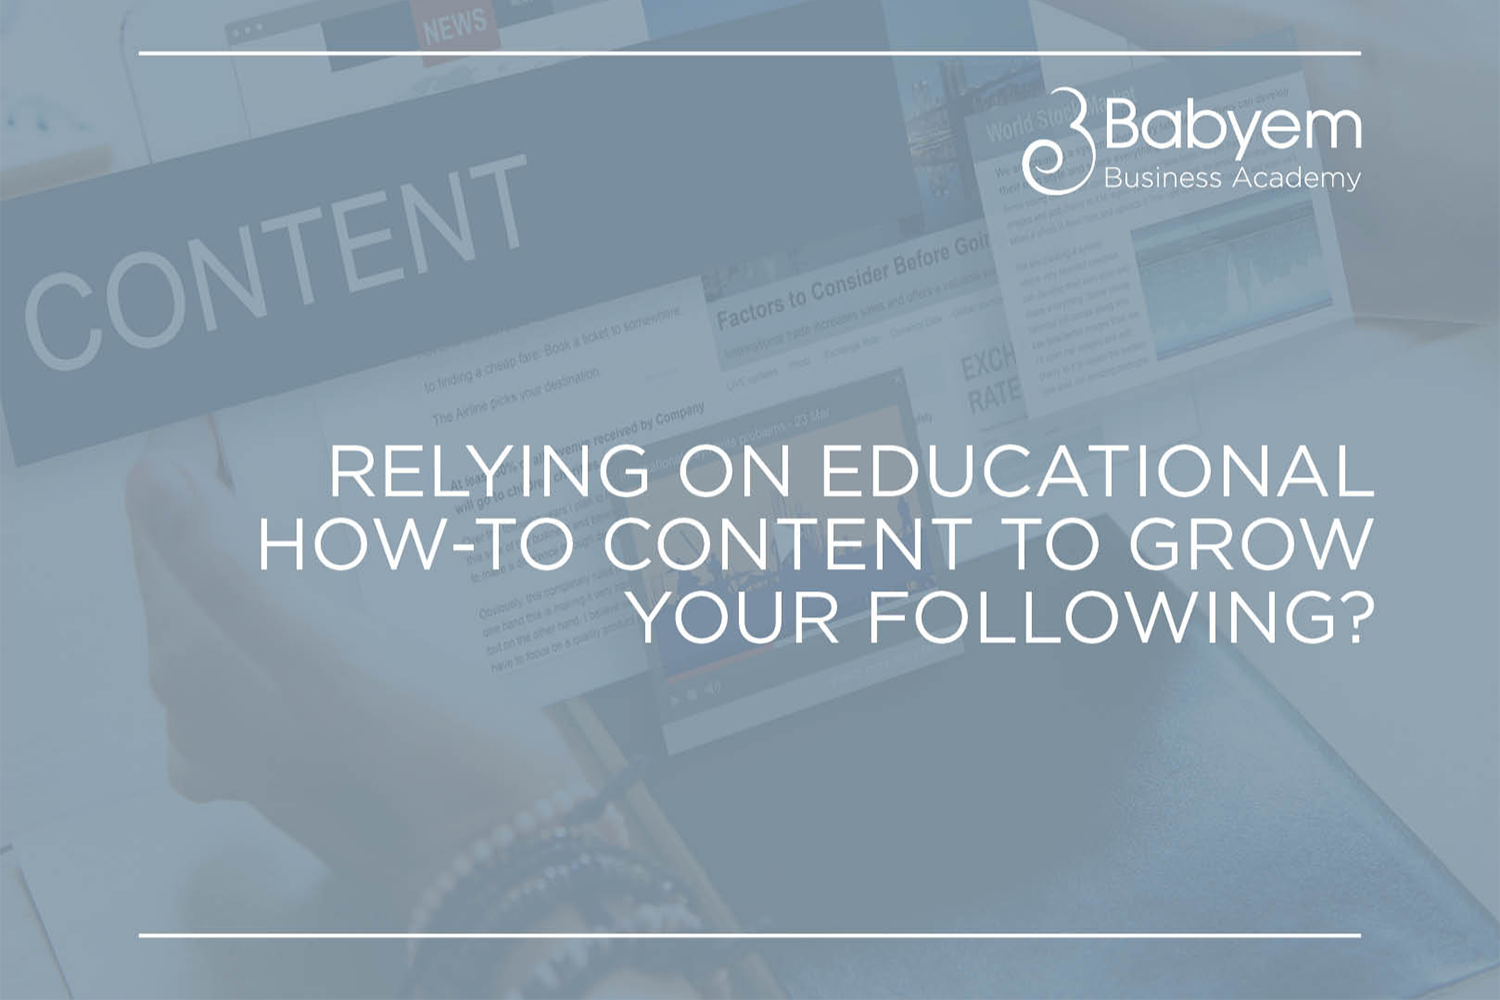 , Educational How-to Content Isn't The Quickest Way To Grow Your Following